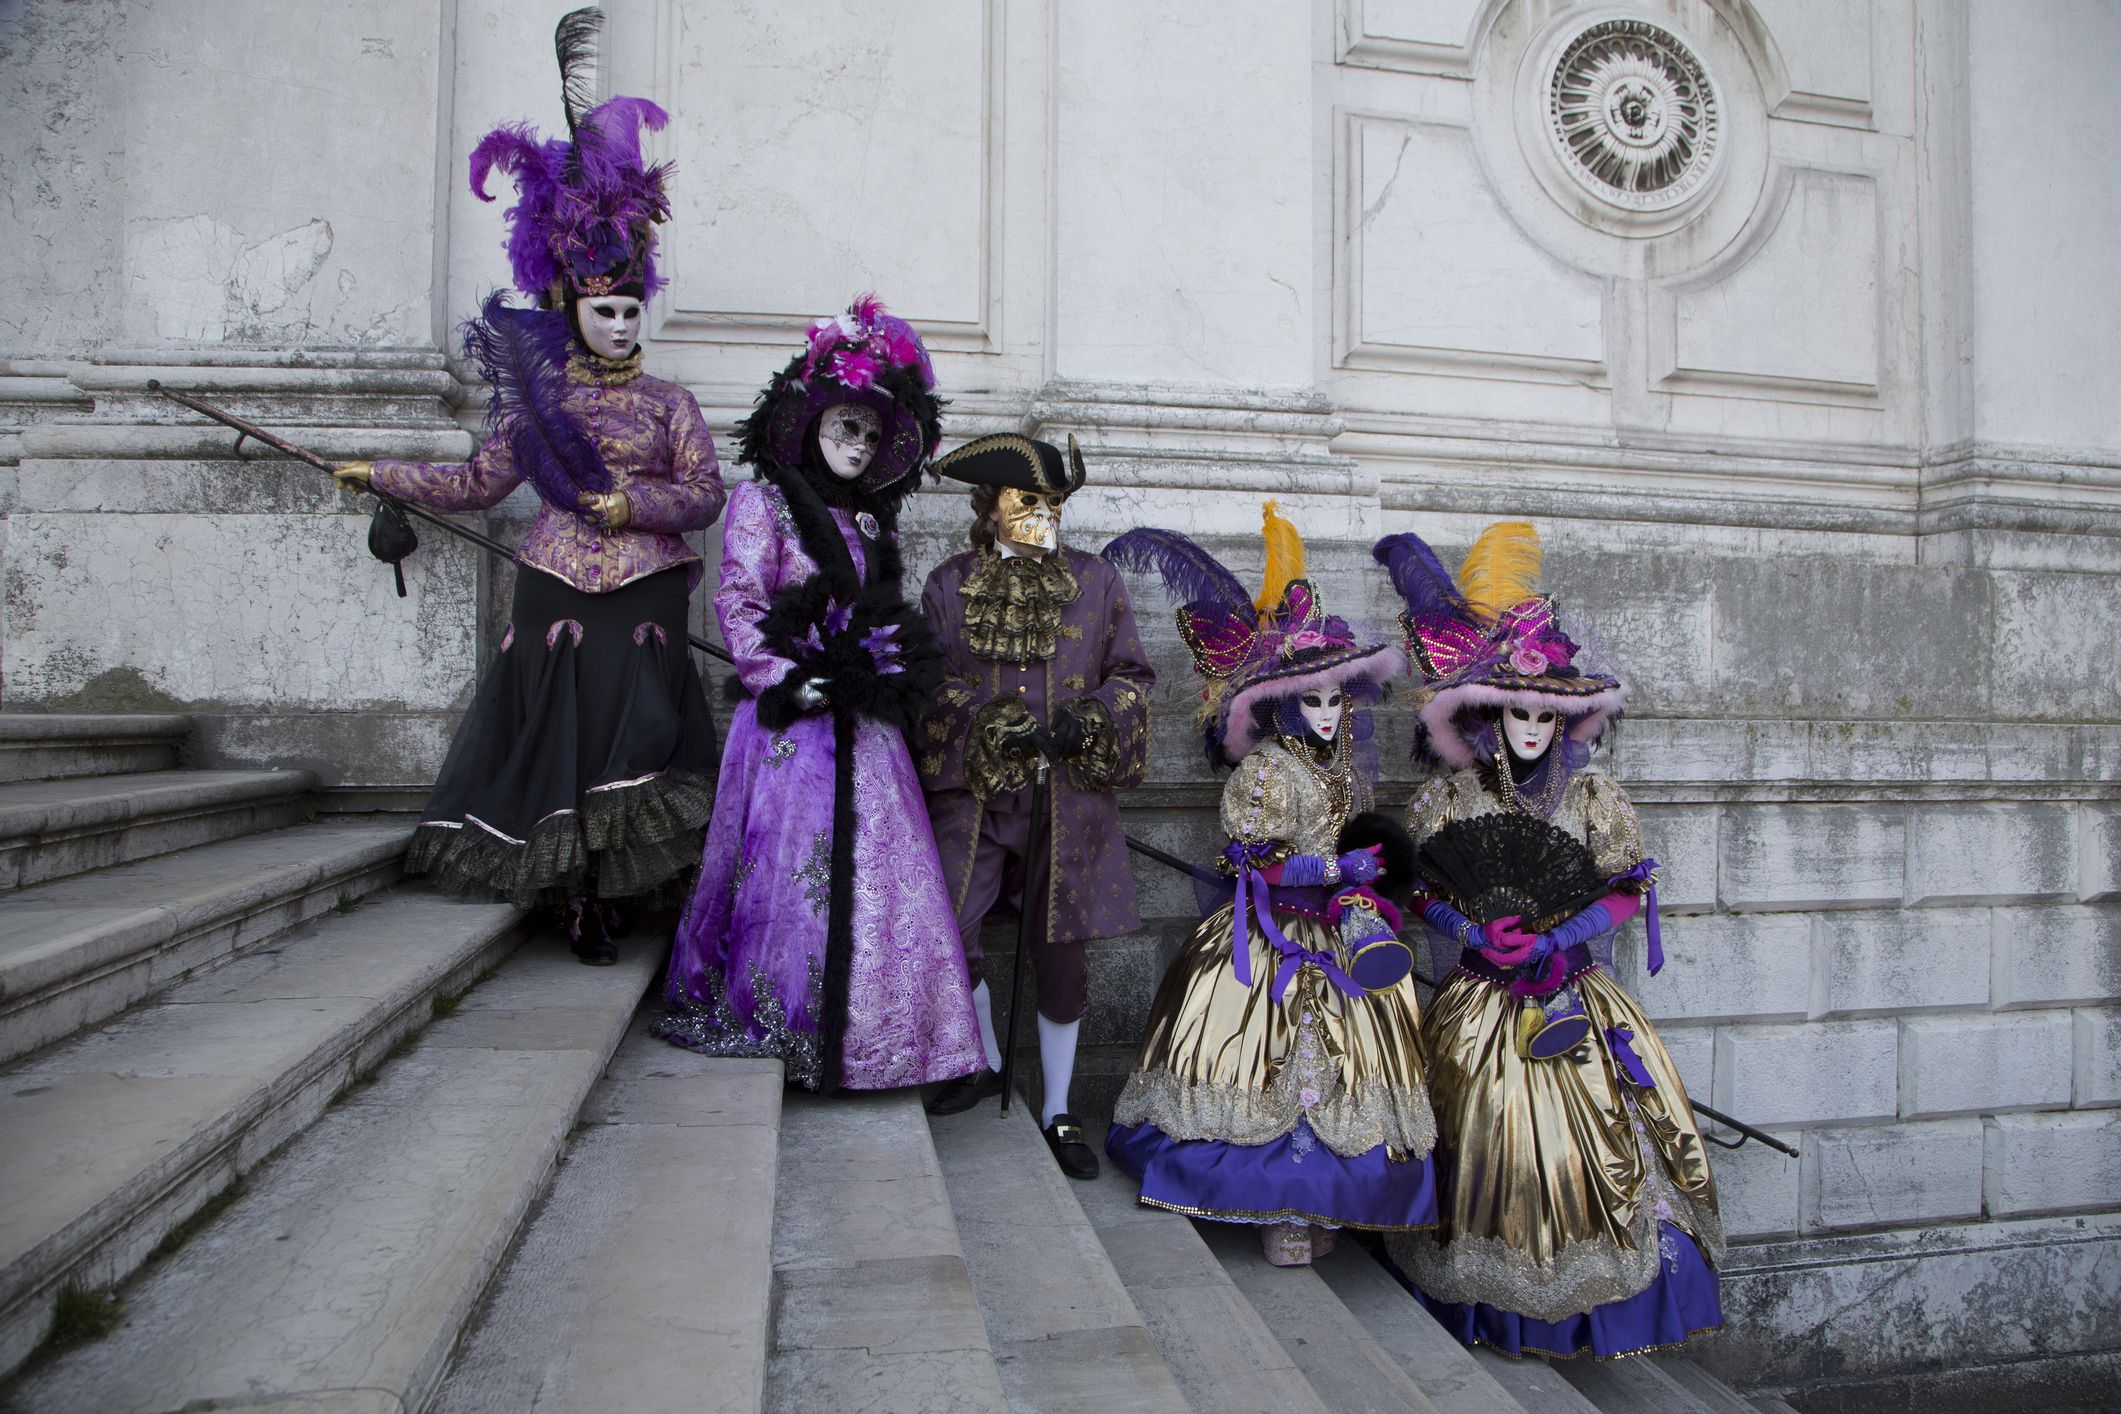 Tips for Going to Carnevale in Venice